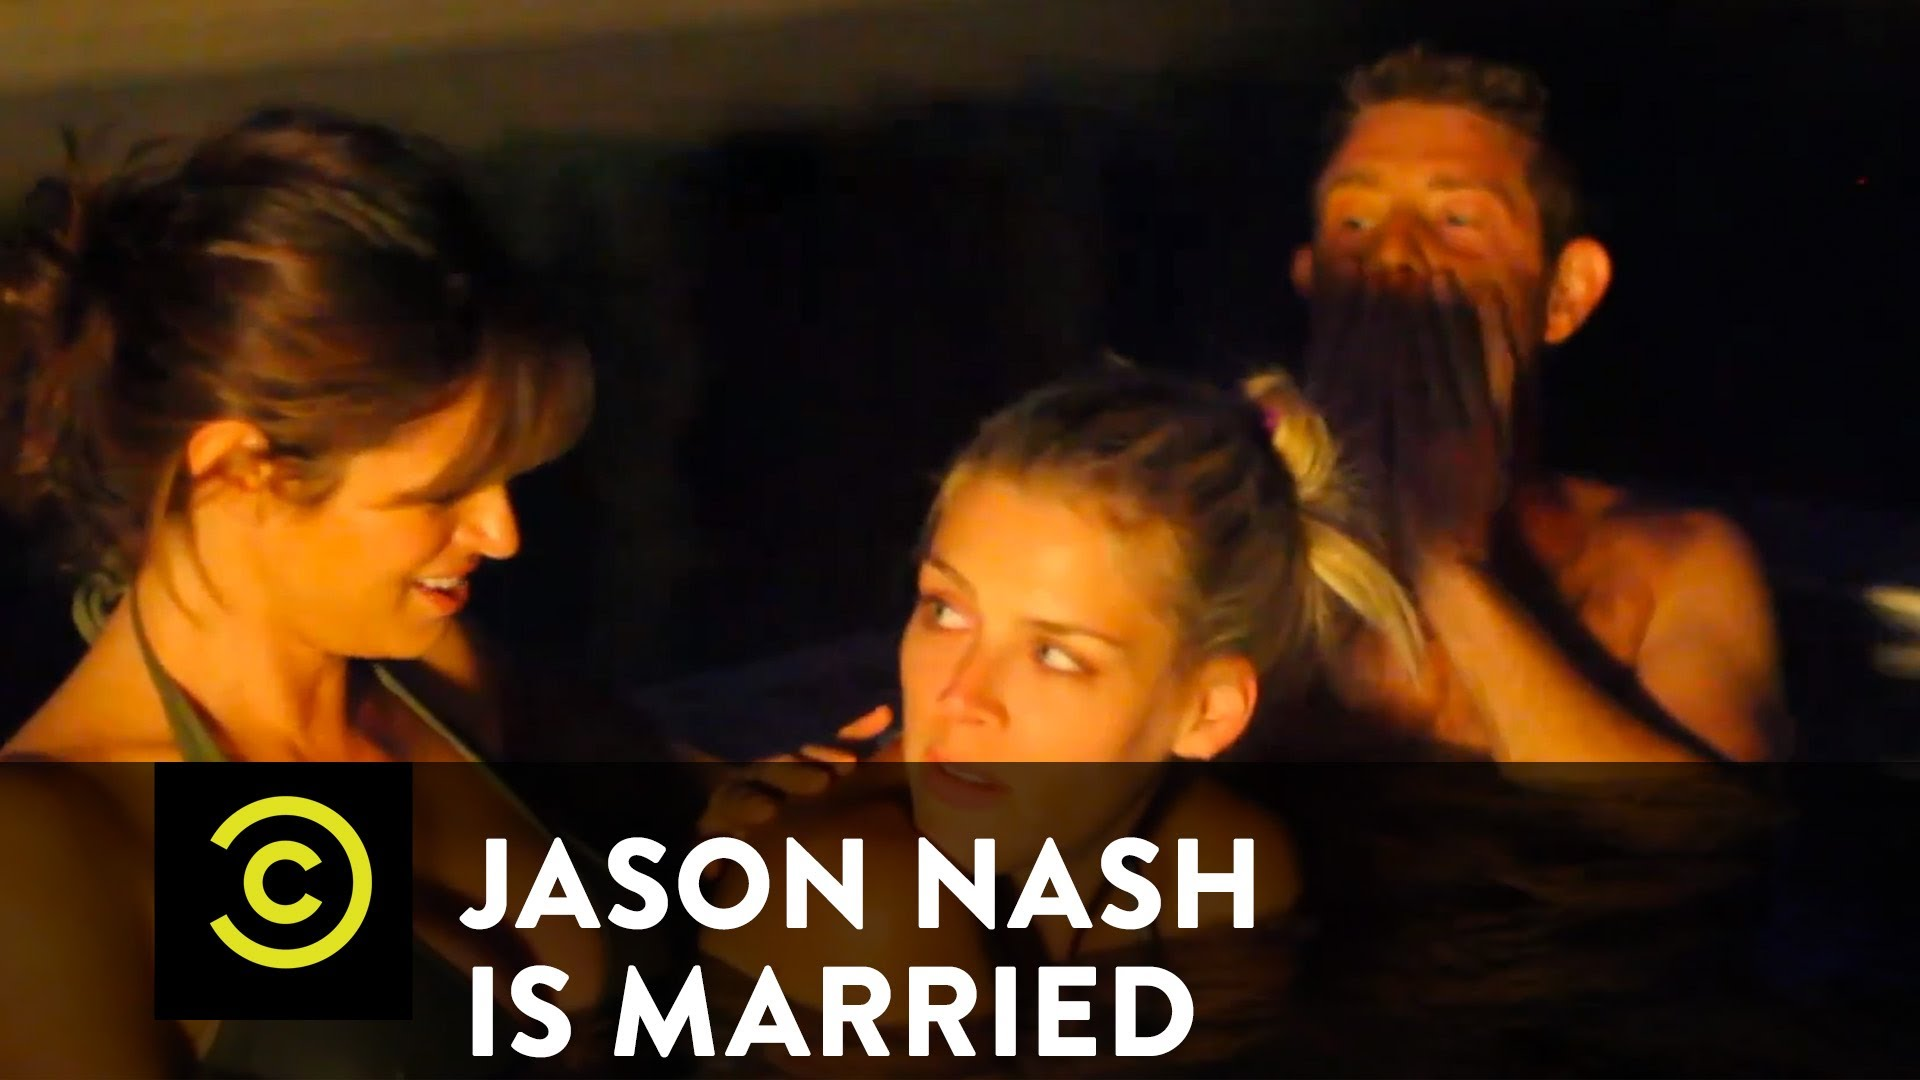 Jason Nash Is Married - Deleted Scene - A Sexy Night with Mindy